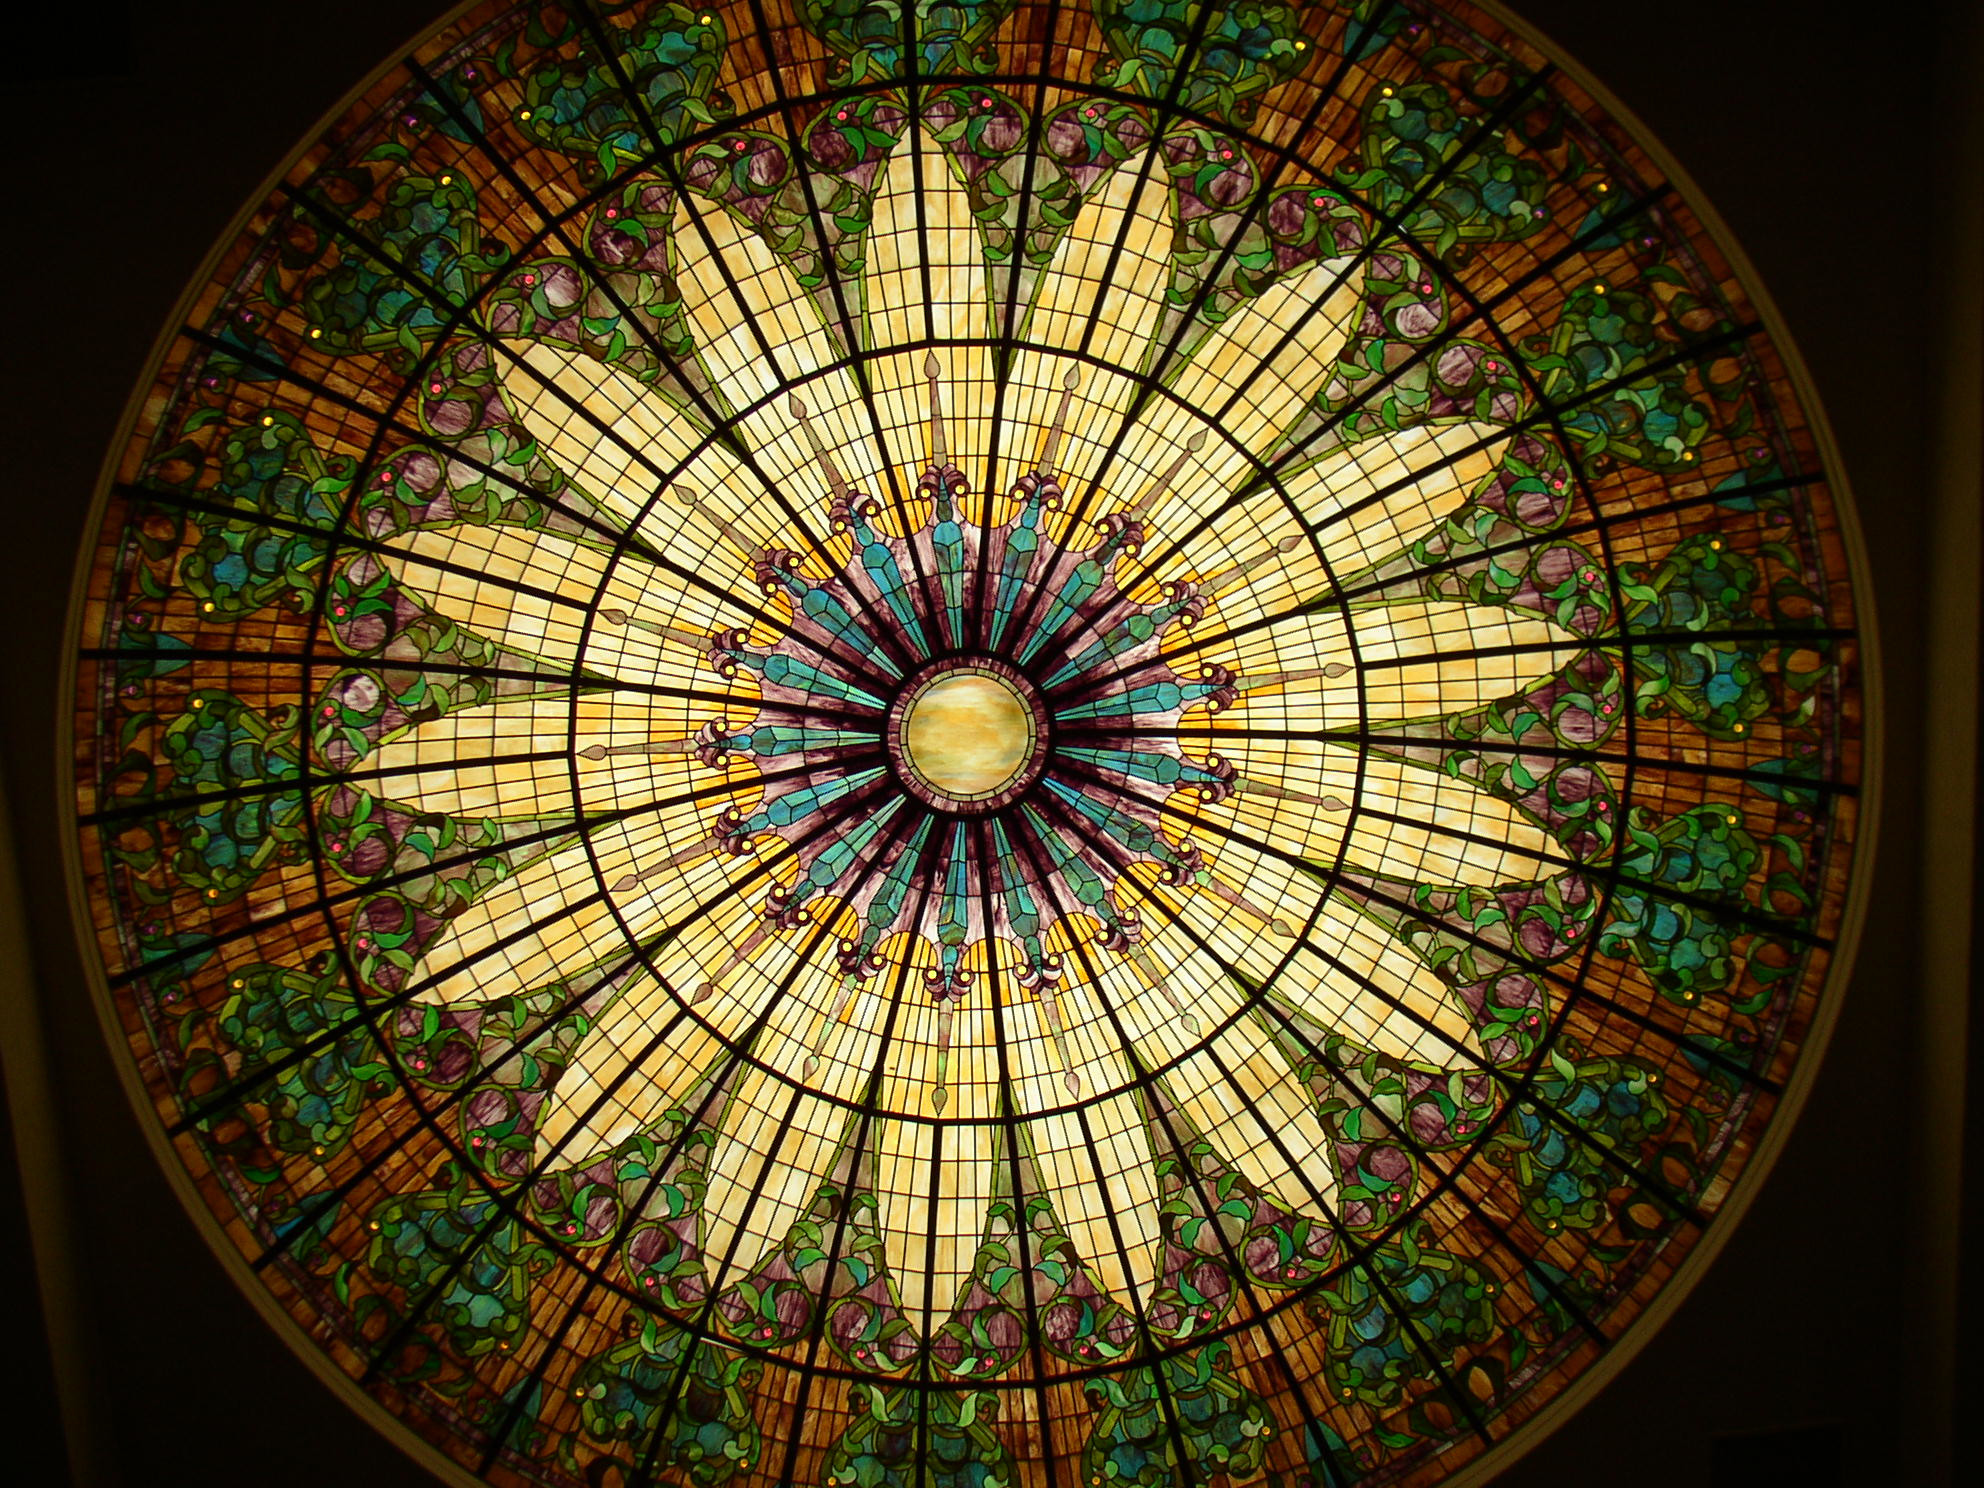 Custom stained glass dome opalescent glass, church glass commission, handmade